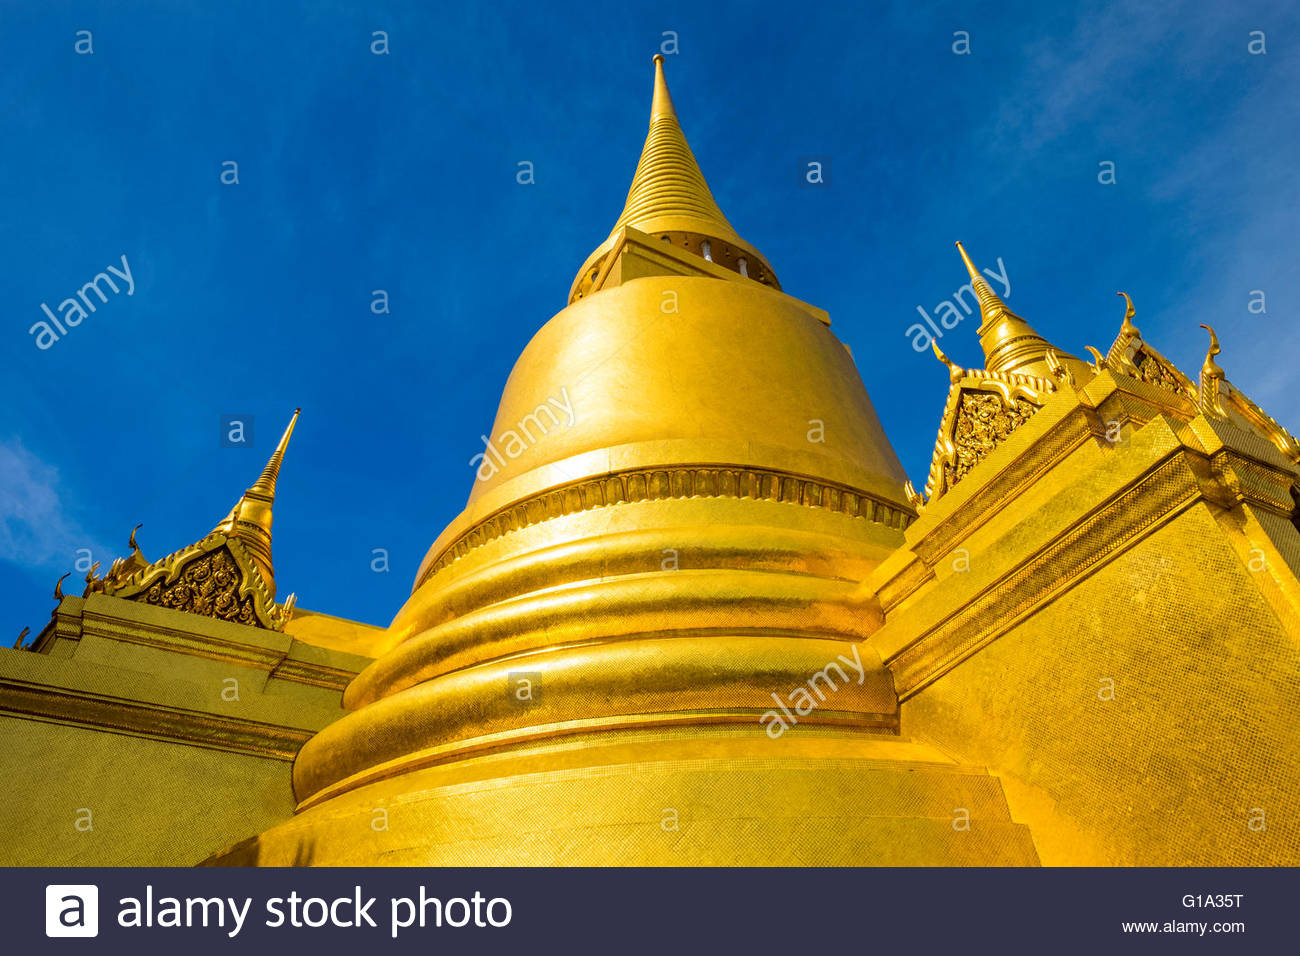 Phra Si Rattana Chedi golden chedi at Temple of the Emerald Buddha (Wat Phra Kaew), Grand Palace complex, Bangkok, - Stock Image